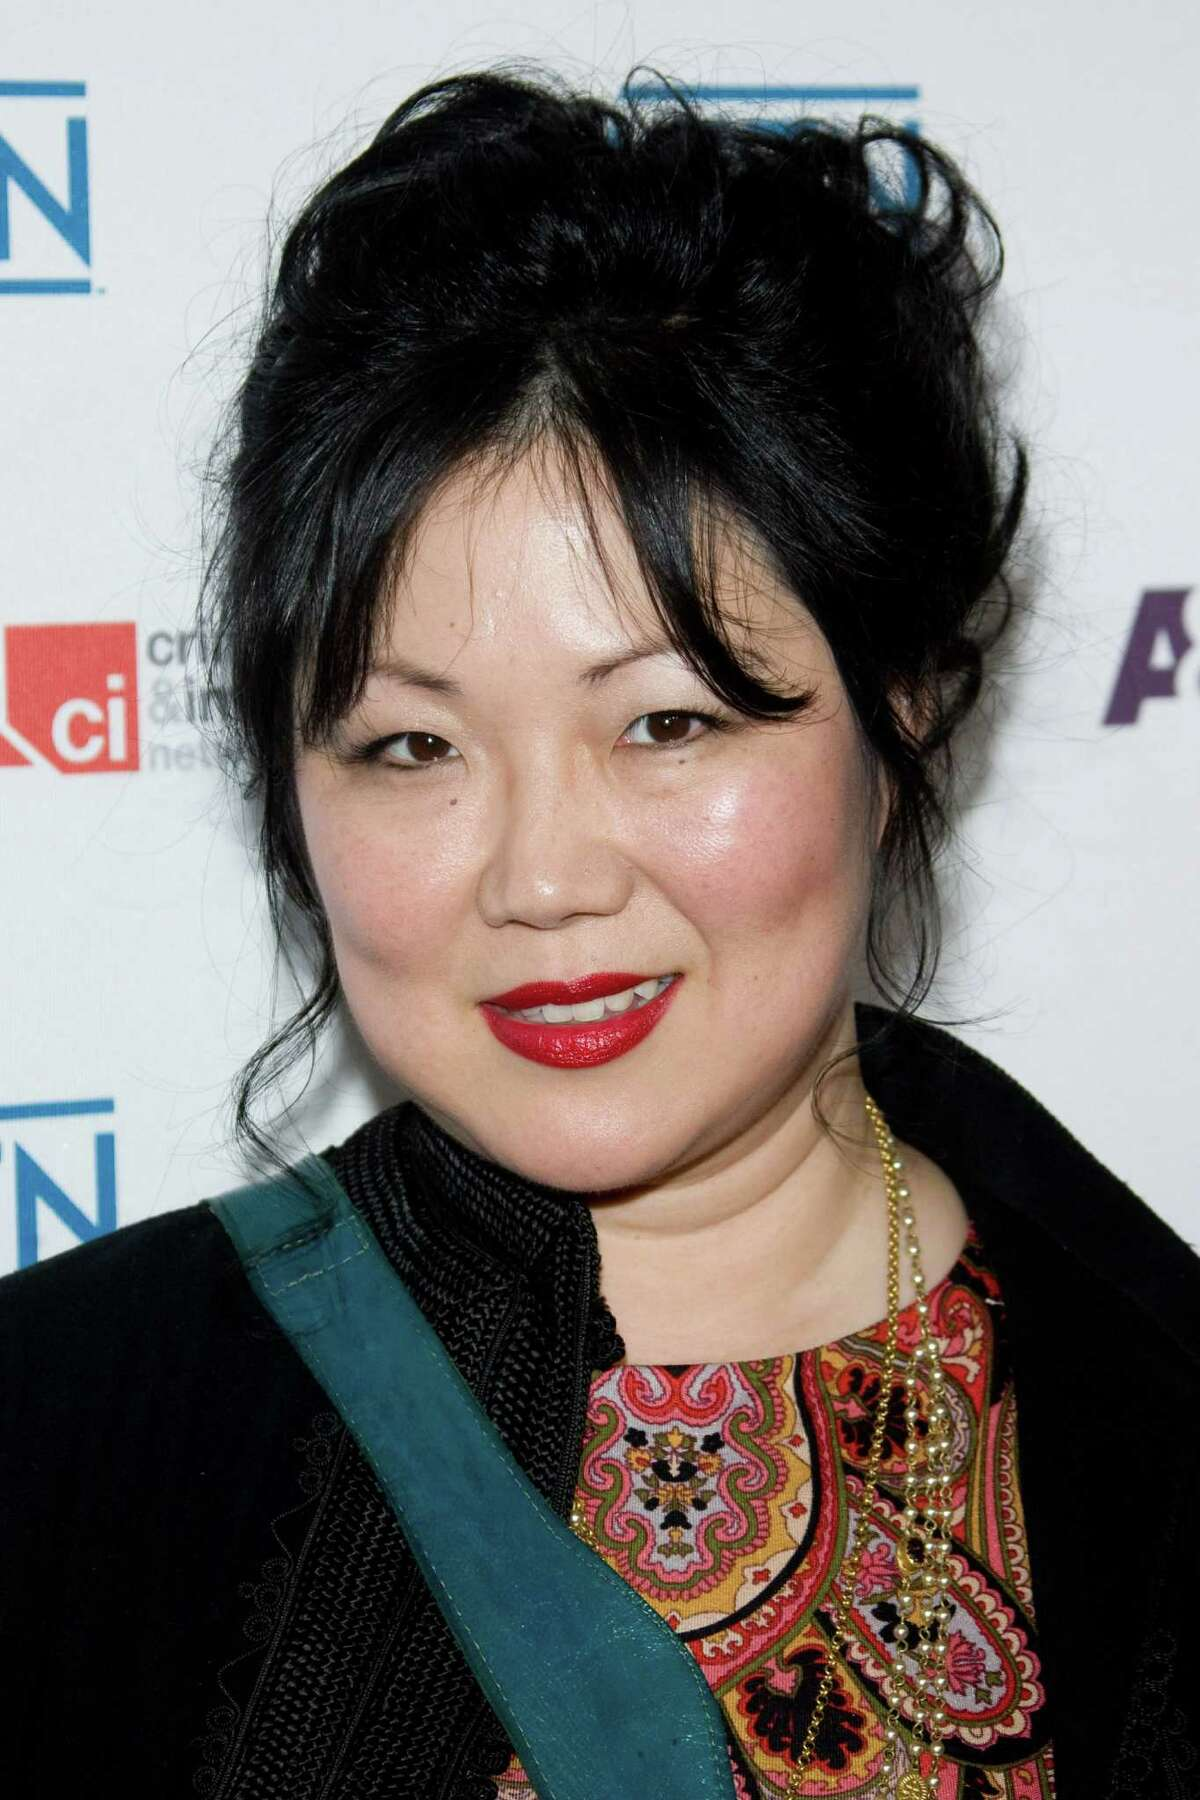 FILE - In this May 5, 2010 file photo, Margaret Cho arrives at A&E Television Network's Upfront in New York. (AP Photo/Charles Sykes, file)